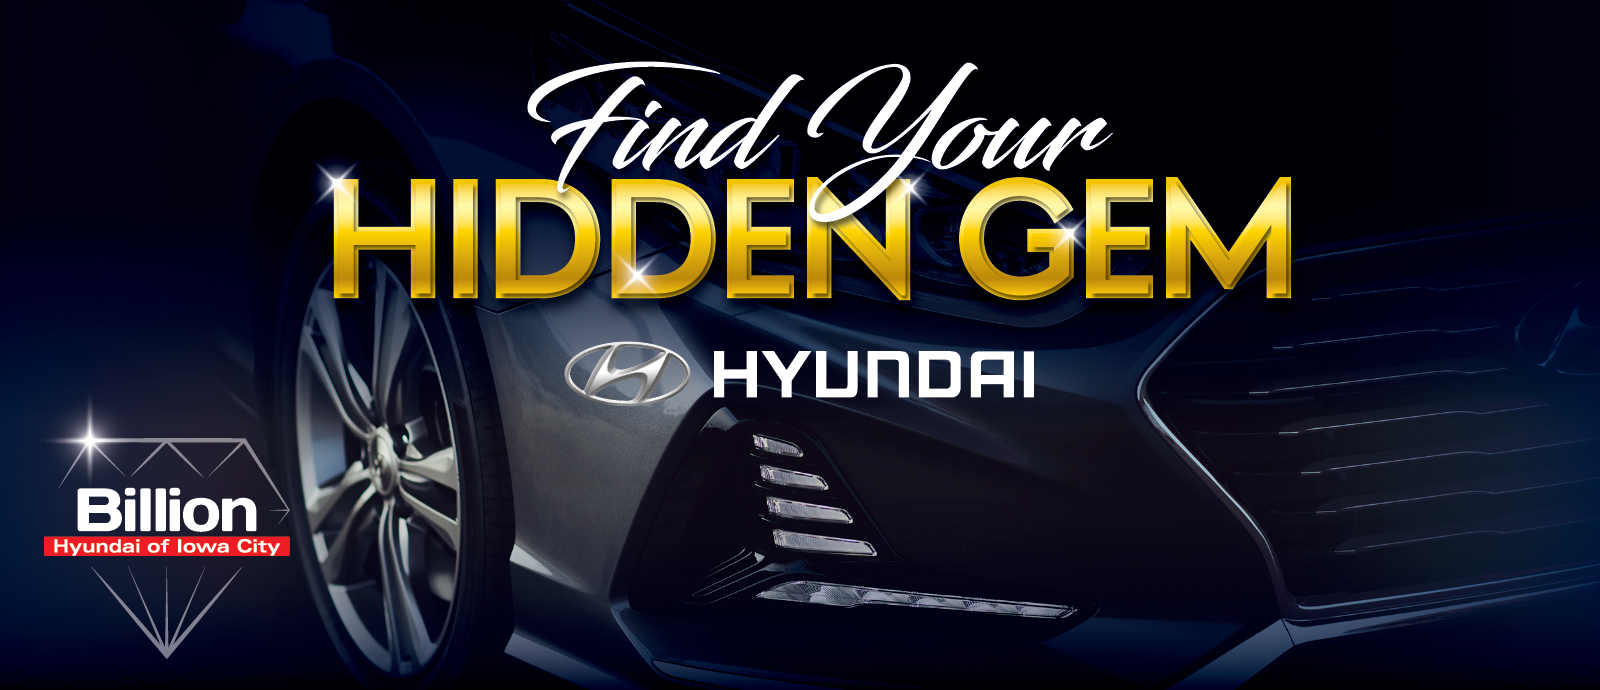 Iowa City Hyundai